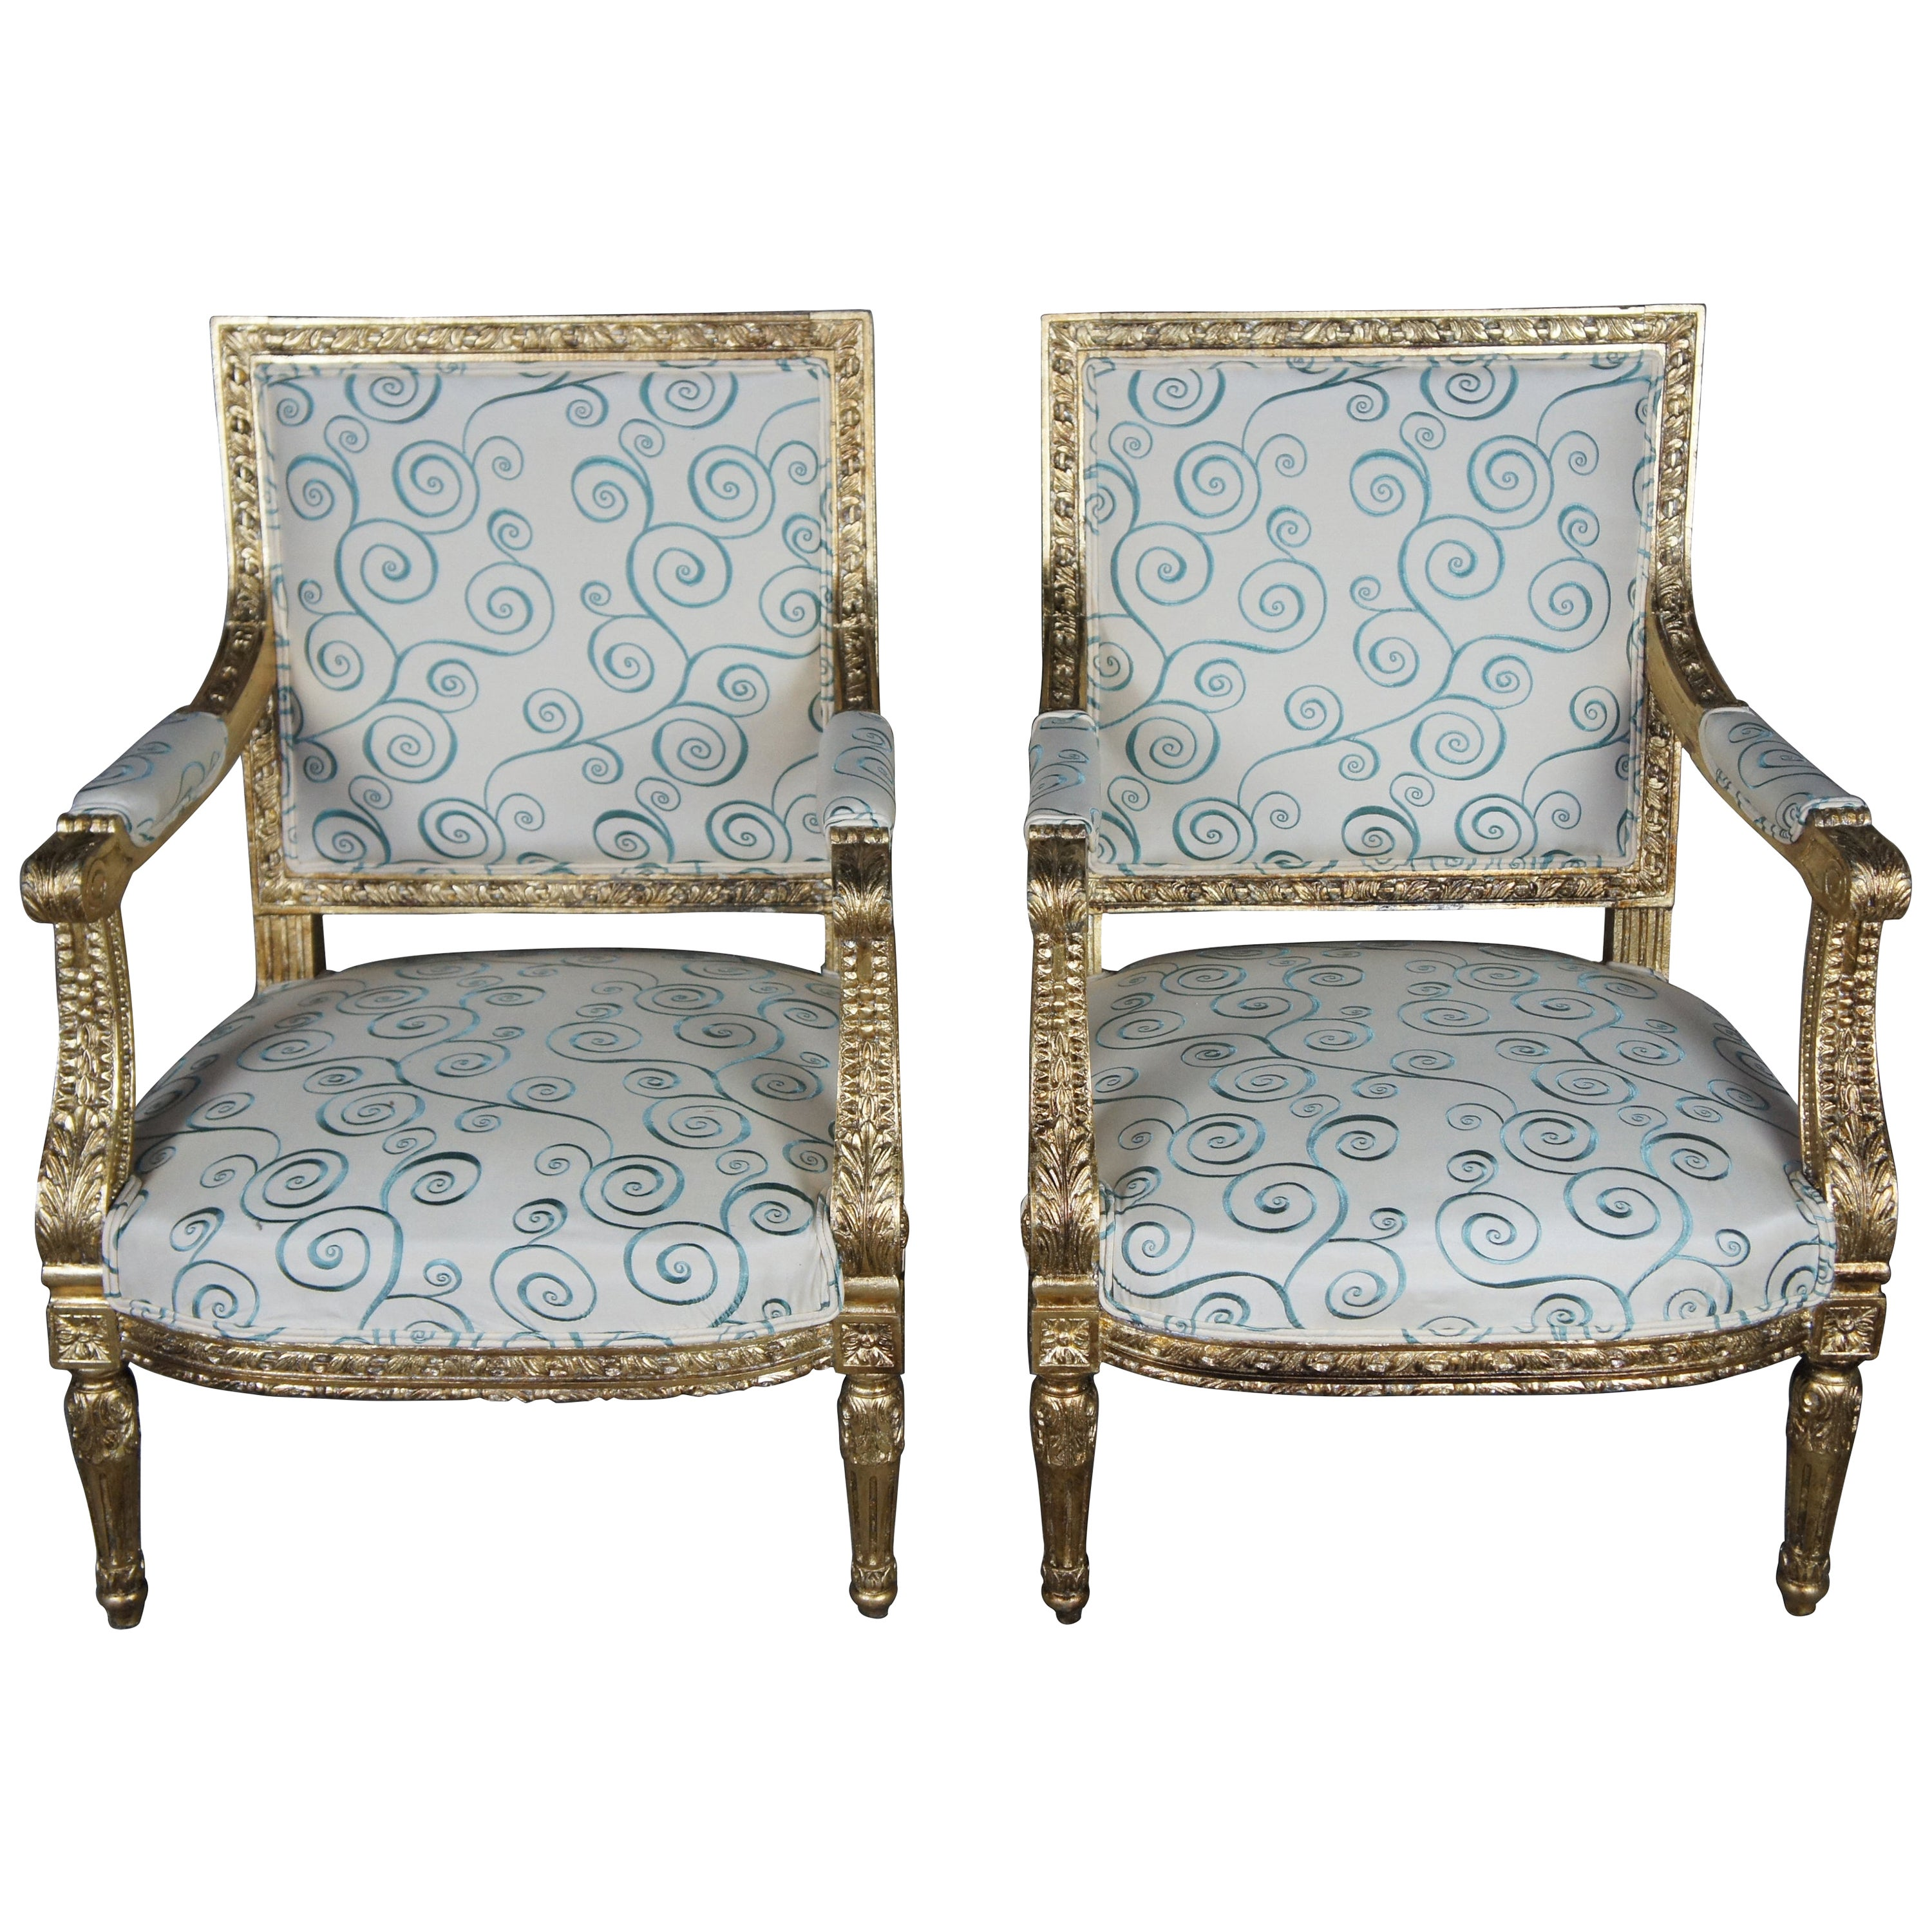 Antique 19th Century Louis XVI Fauteuil Armchairs Neoclassical French Accent